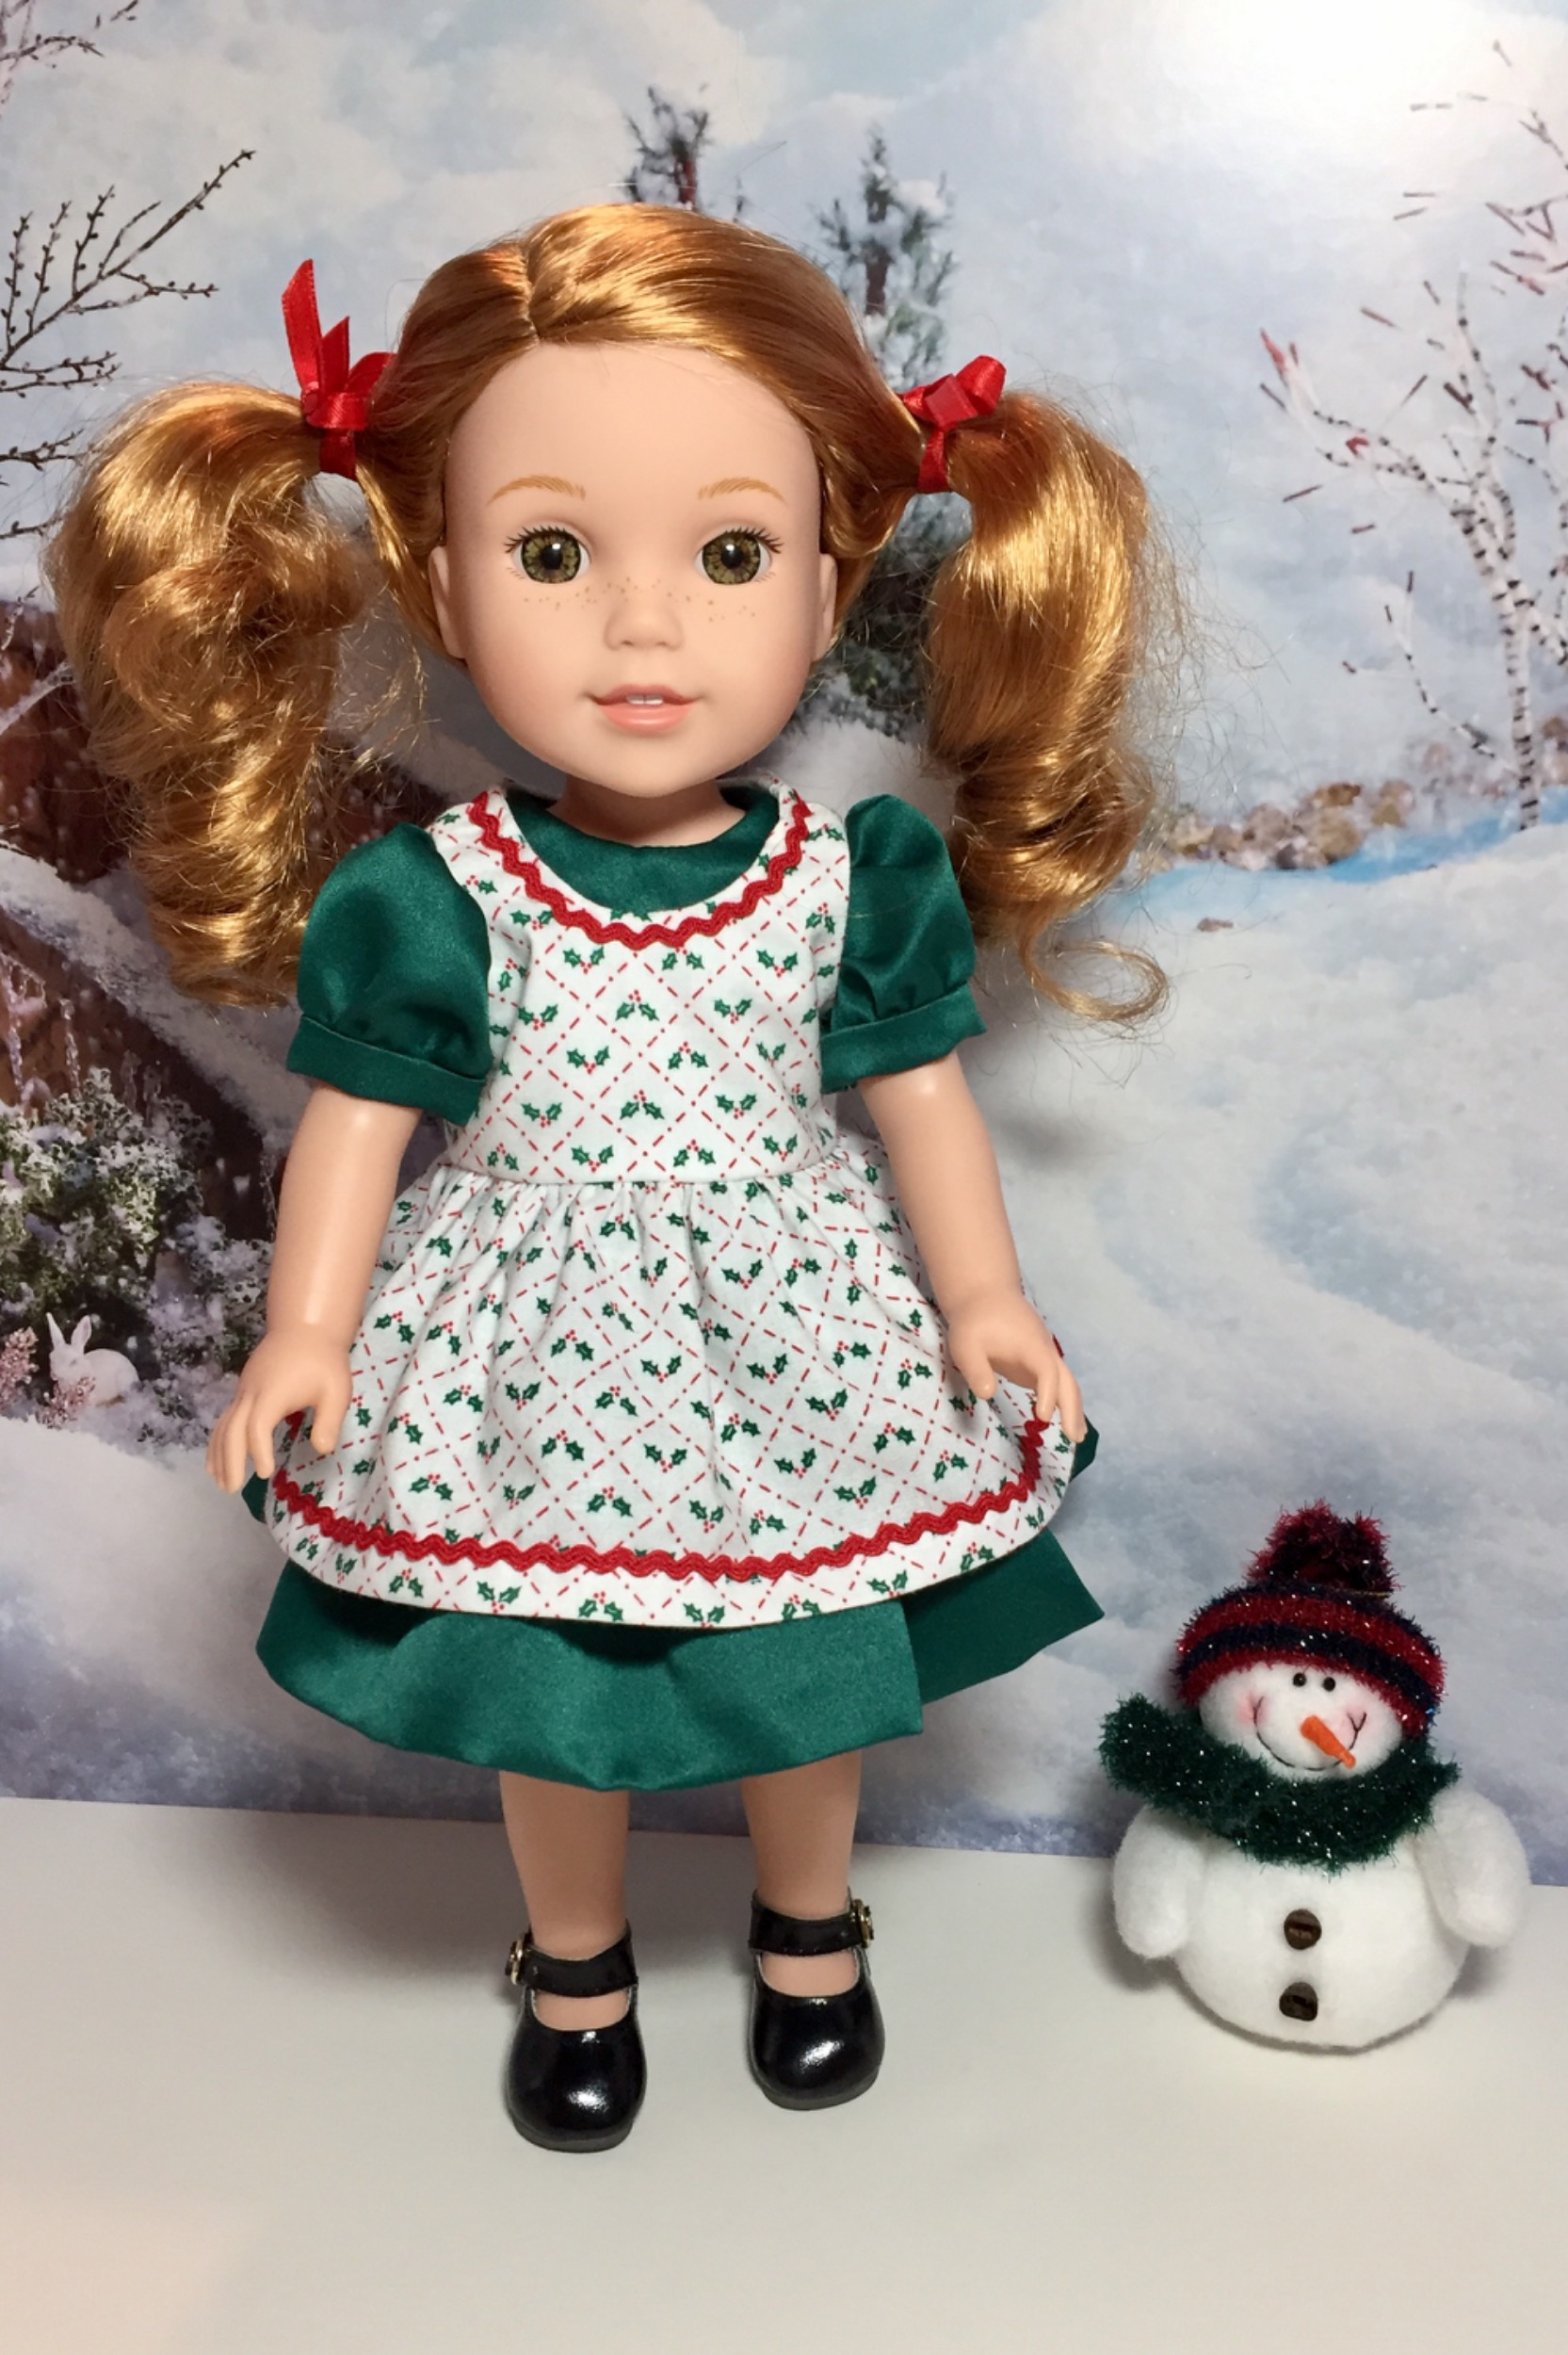 Sugar n Spice & Everything Nice Dress & Pinafore with Dress Up Accessories for WellieWishers Dolls